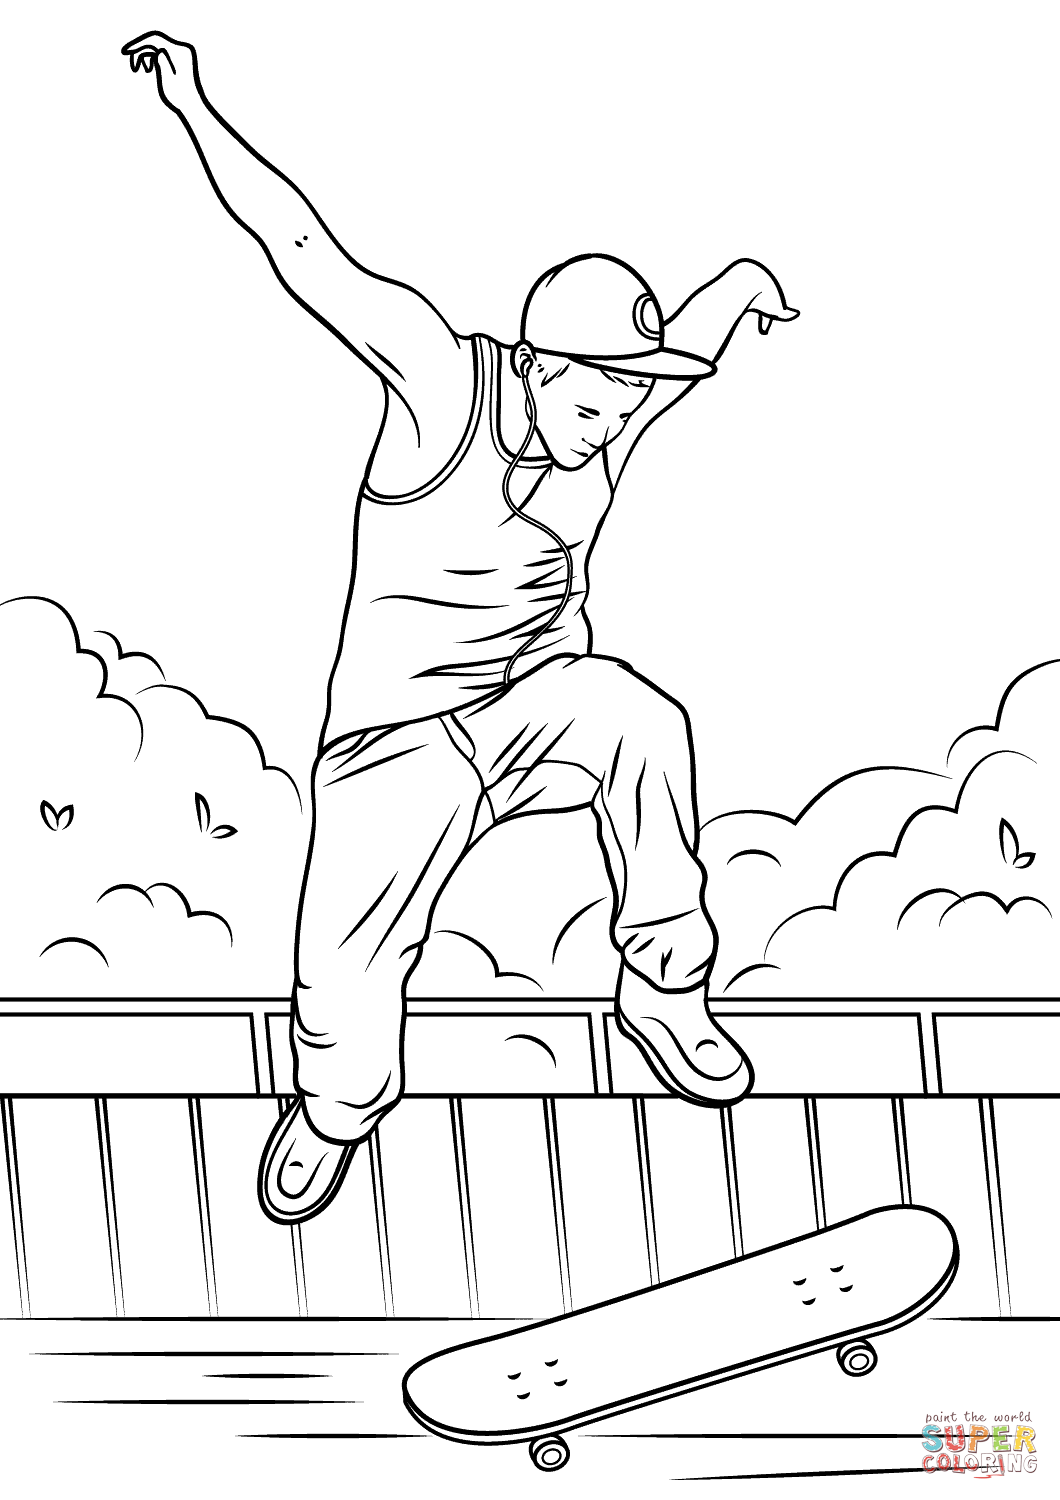 1060x1500 Skateboard Jump Coloring Page Free Printable Coloring Pages